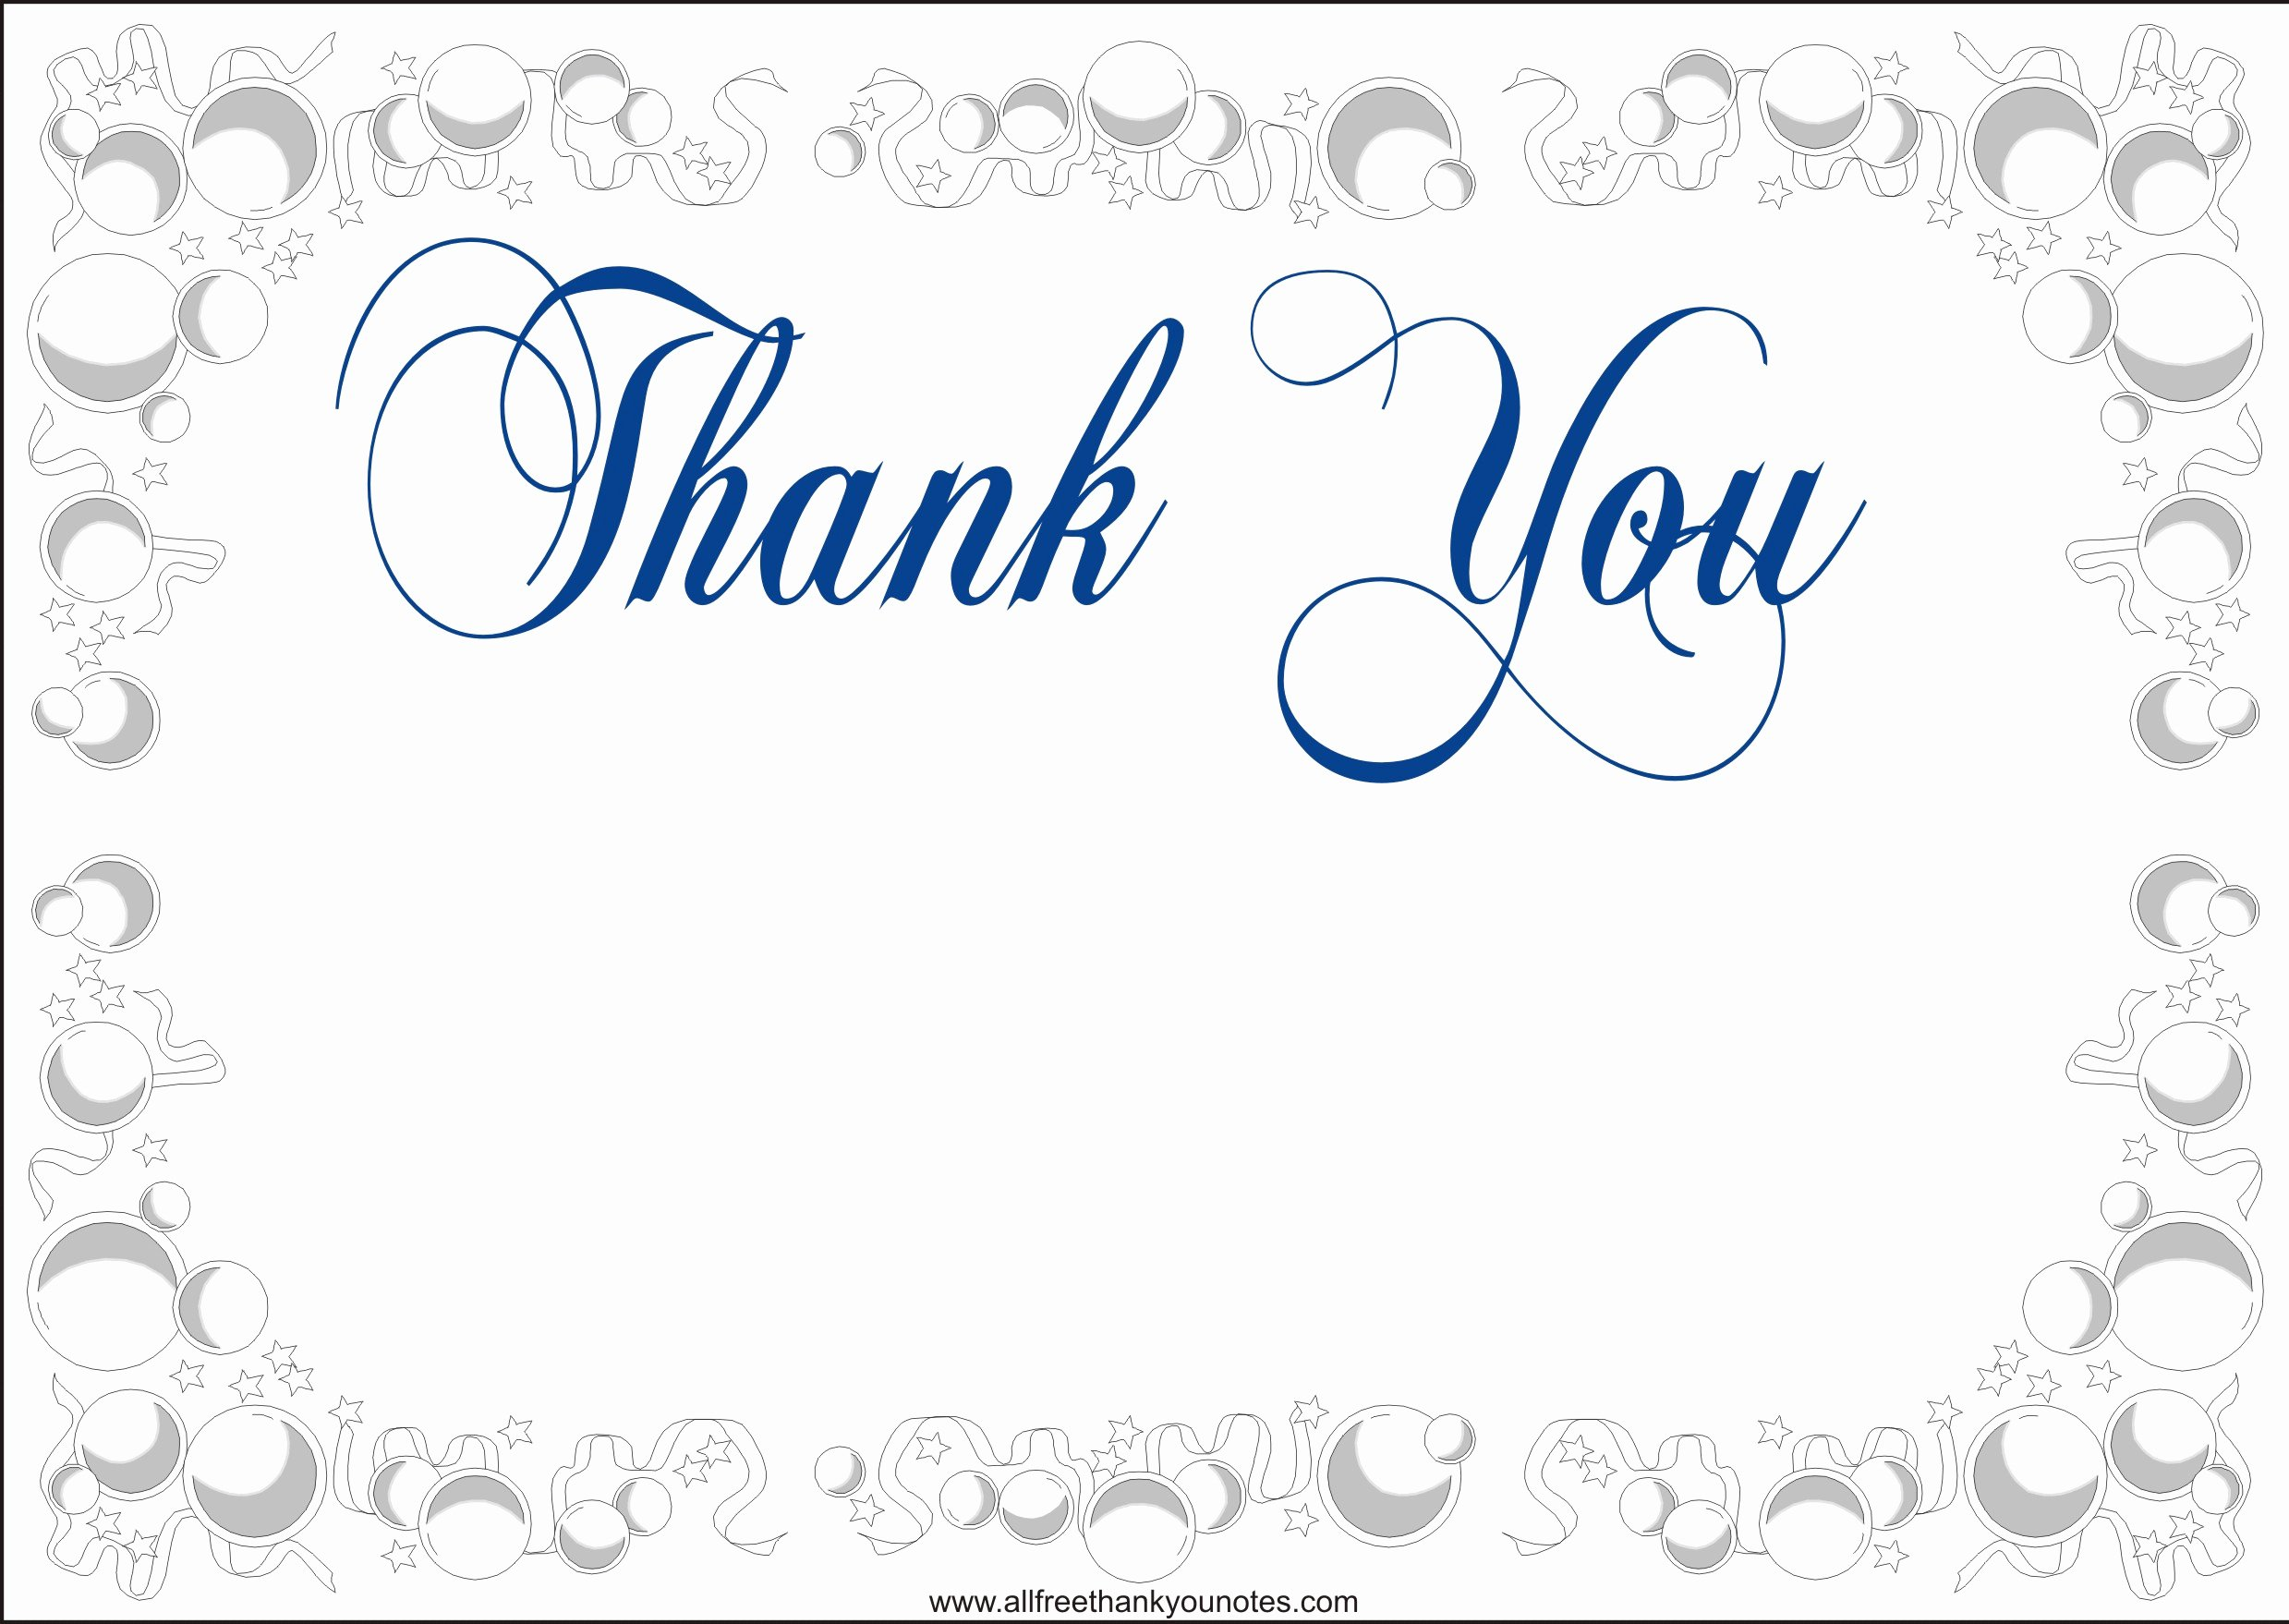 Thank You Card Template Word Awesome Printable Ideas Thank You Card Templates Wording Best